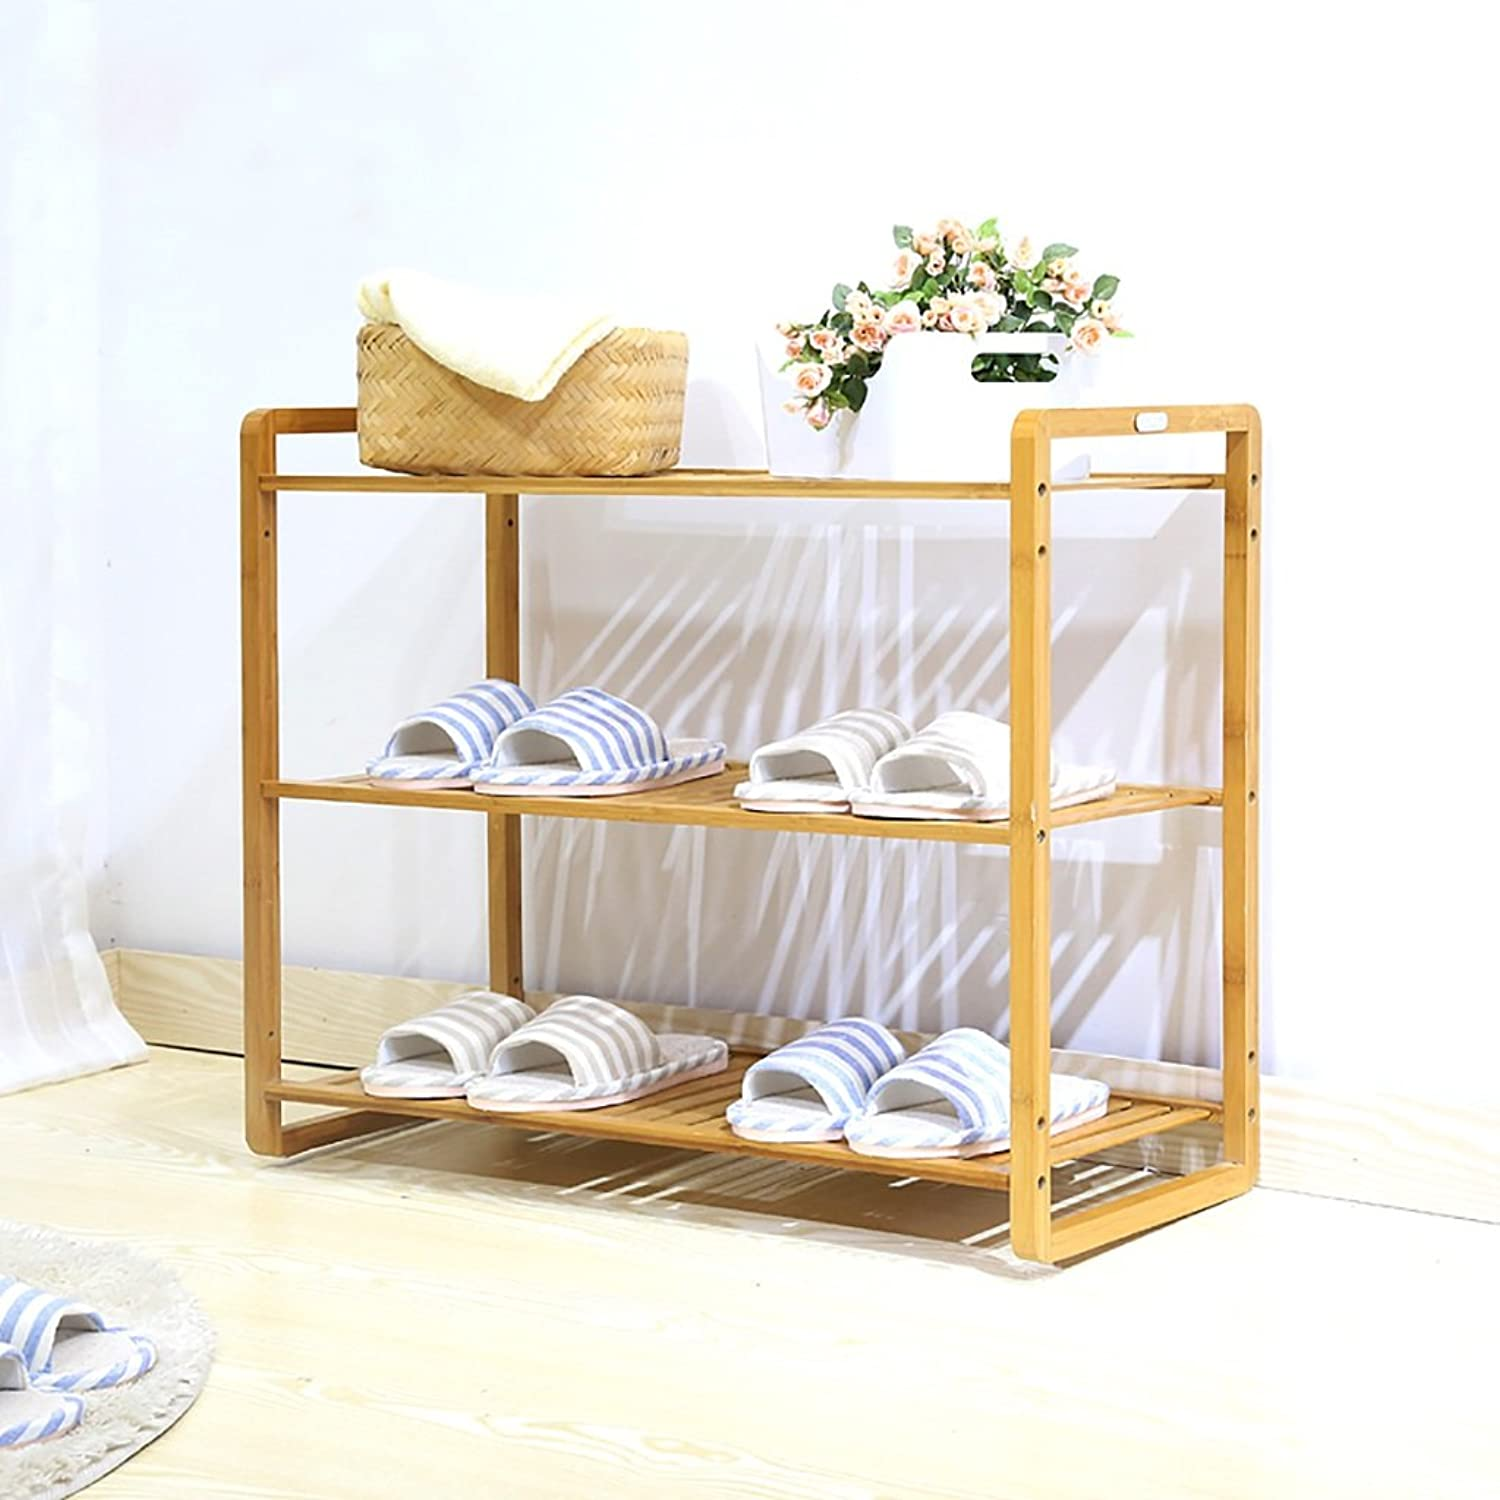 shoes Bench Organizing Rack shoes Rack dustproof Combination shoes Rack Multi - Layer Finishing Rack Nan Bamboo Bedroom Shelves